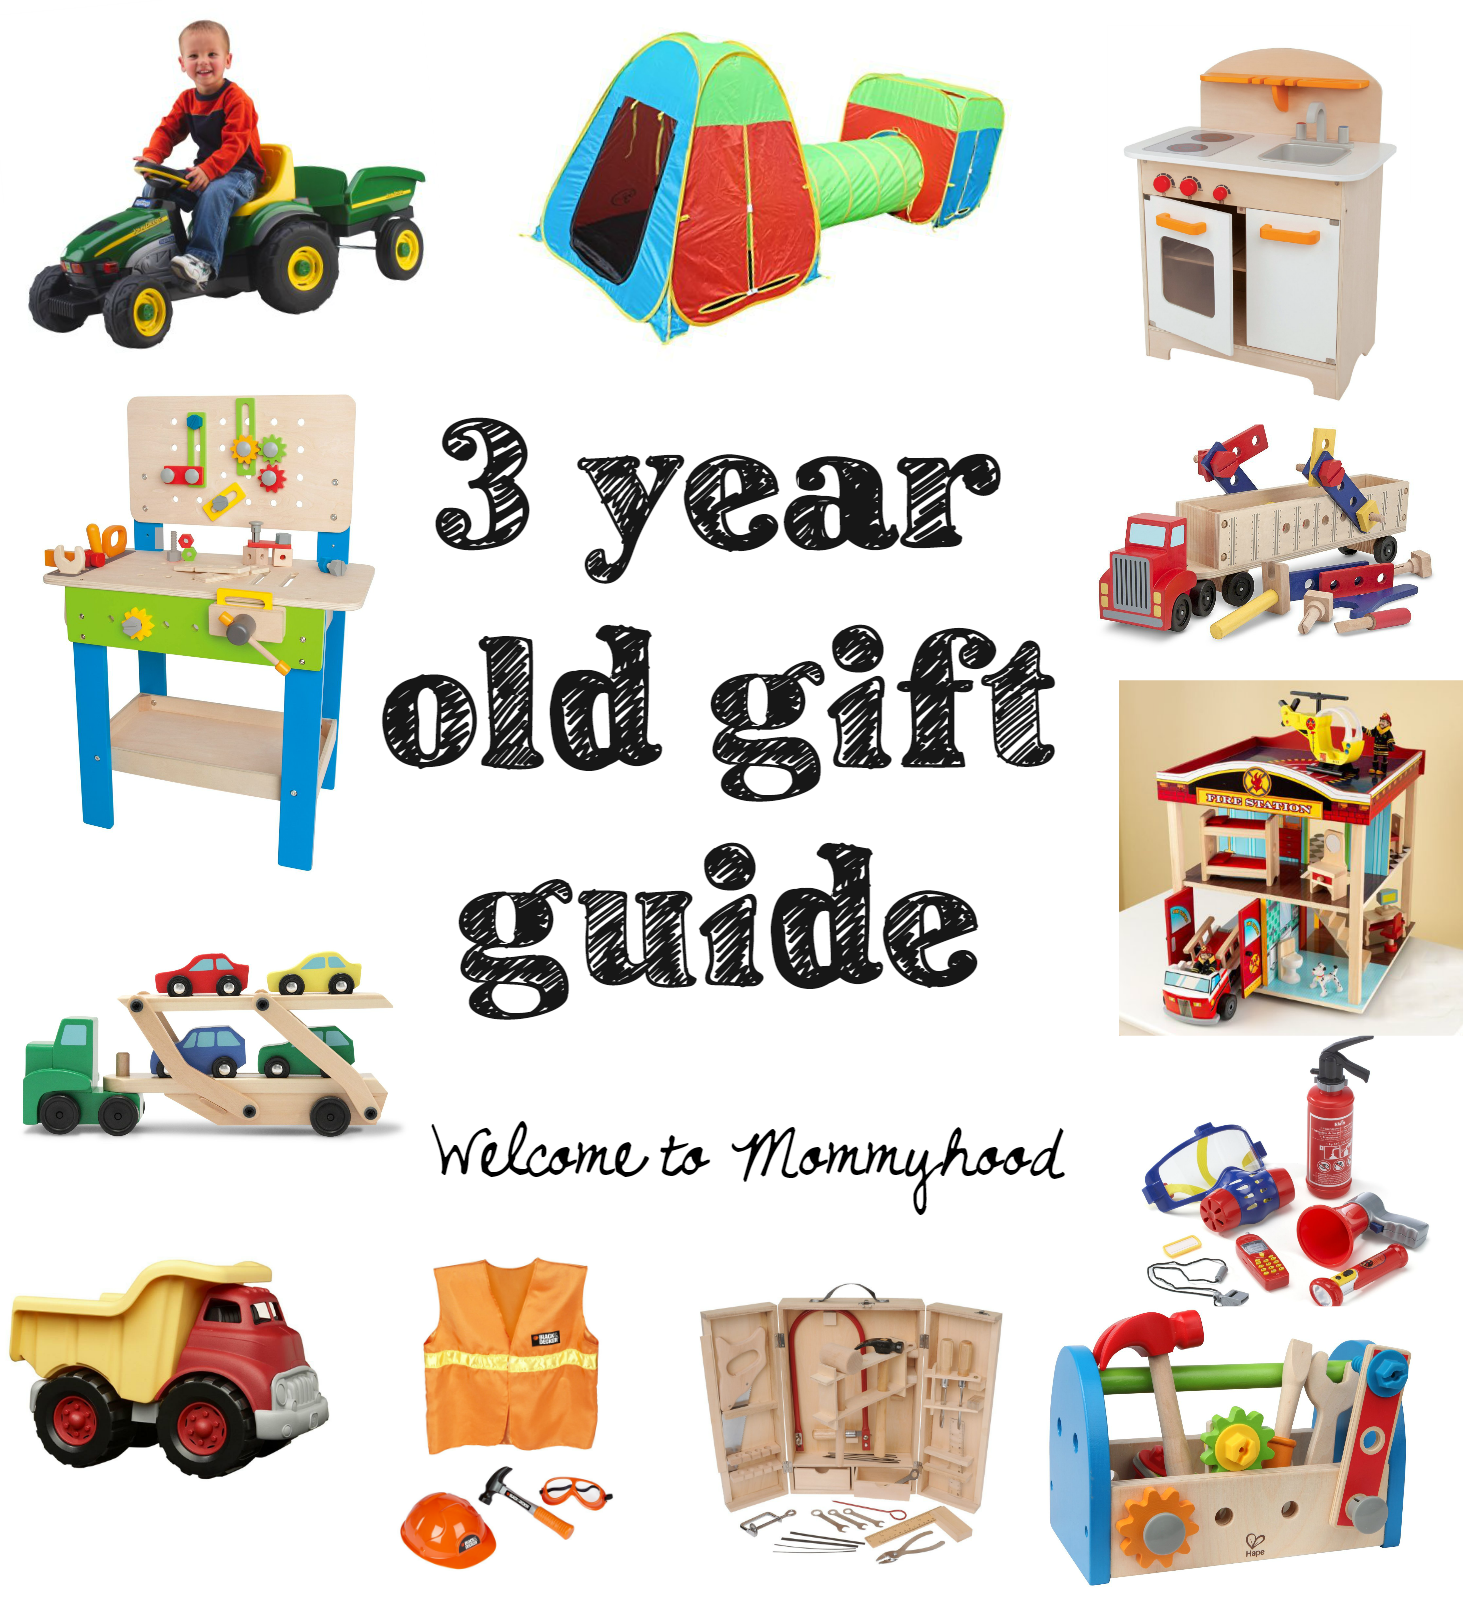 Permalink to Amazing Christmas toys for 3 Year Old Boy Pics